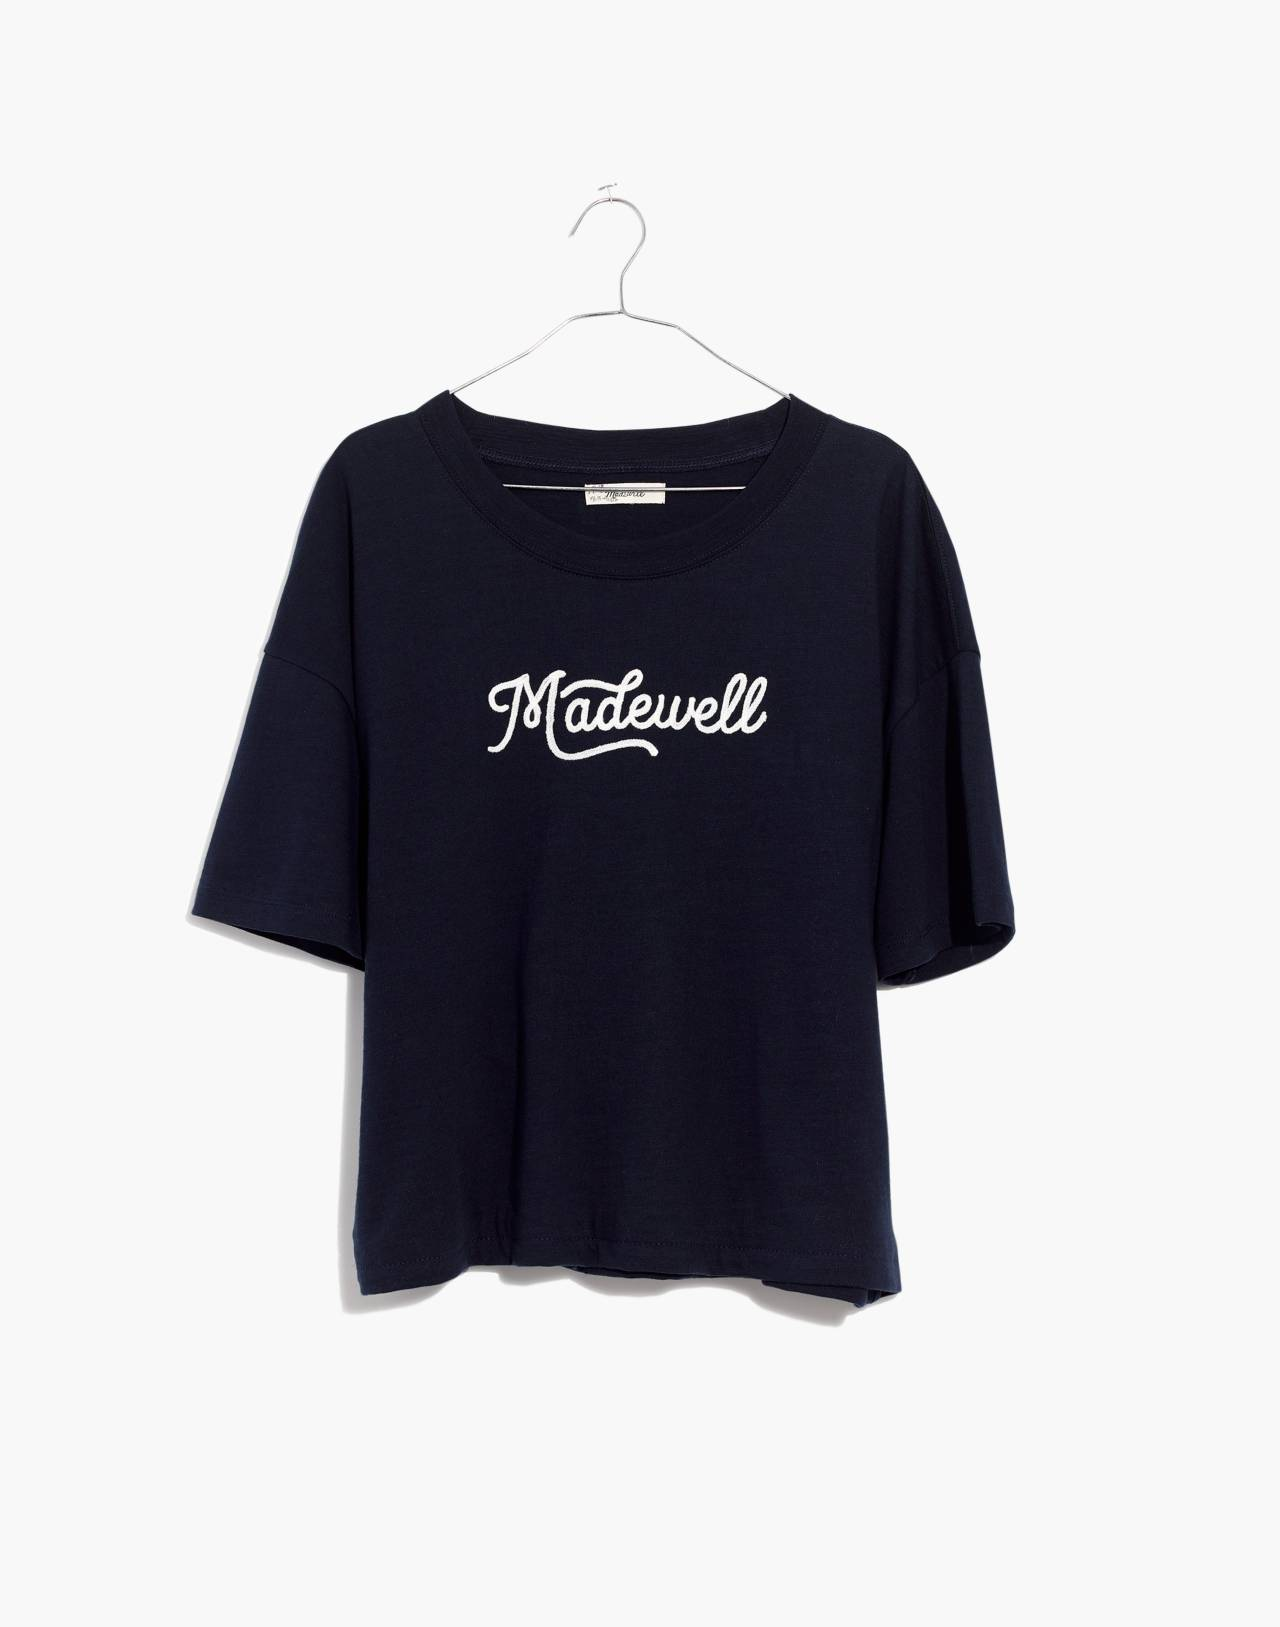 Embroidered Madewell Easy Crop Tee in deep navy image 4